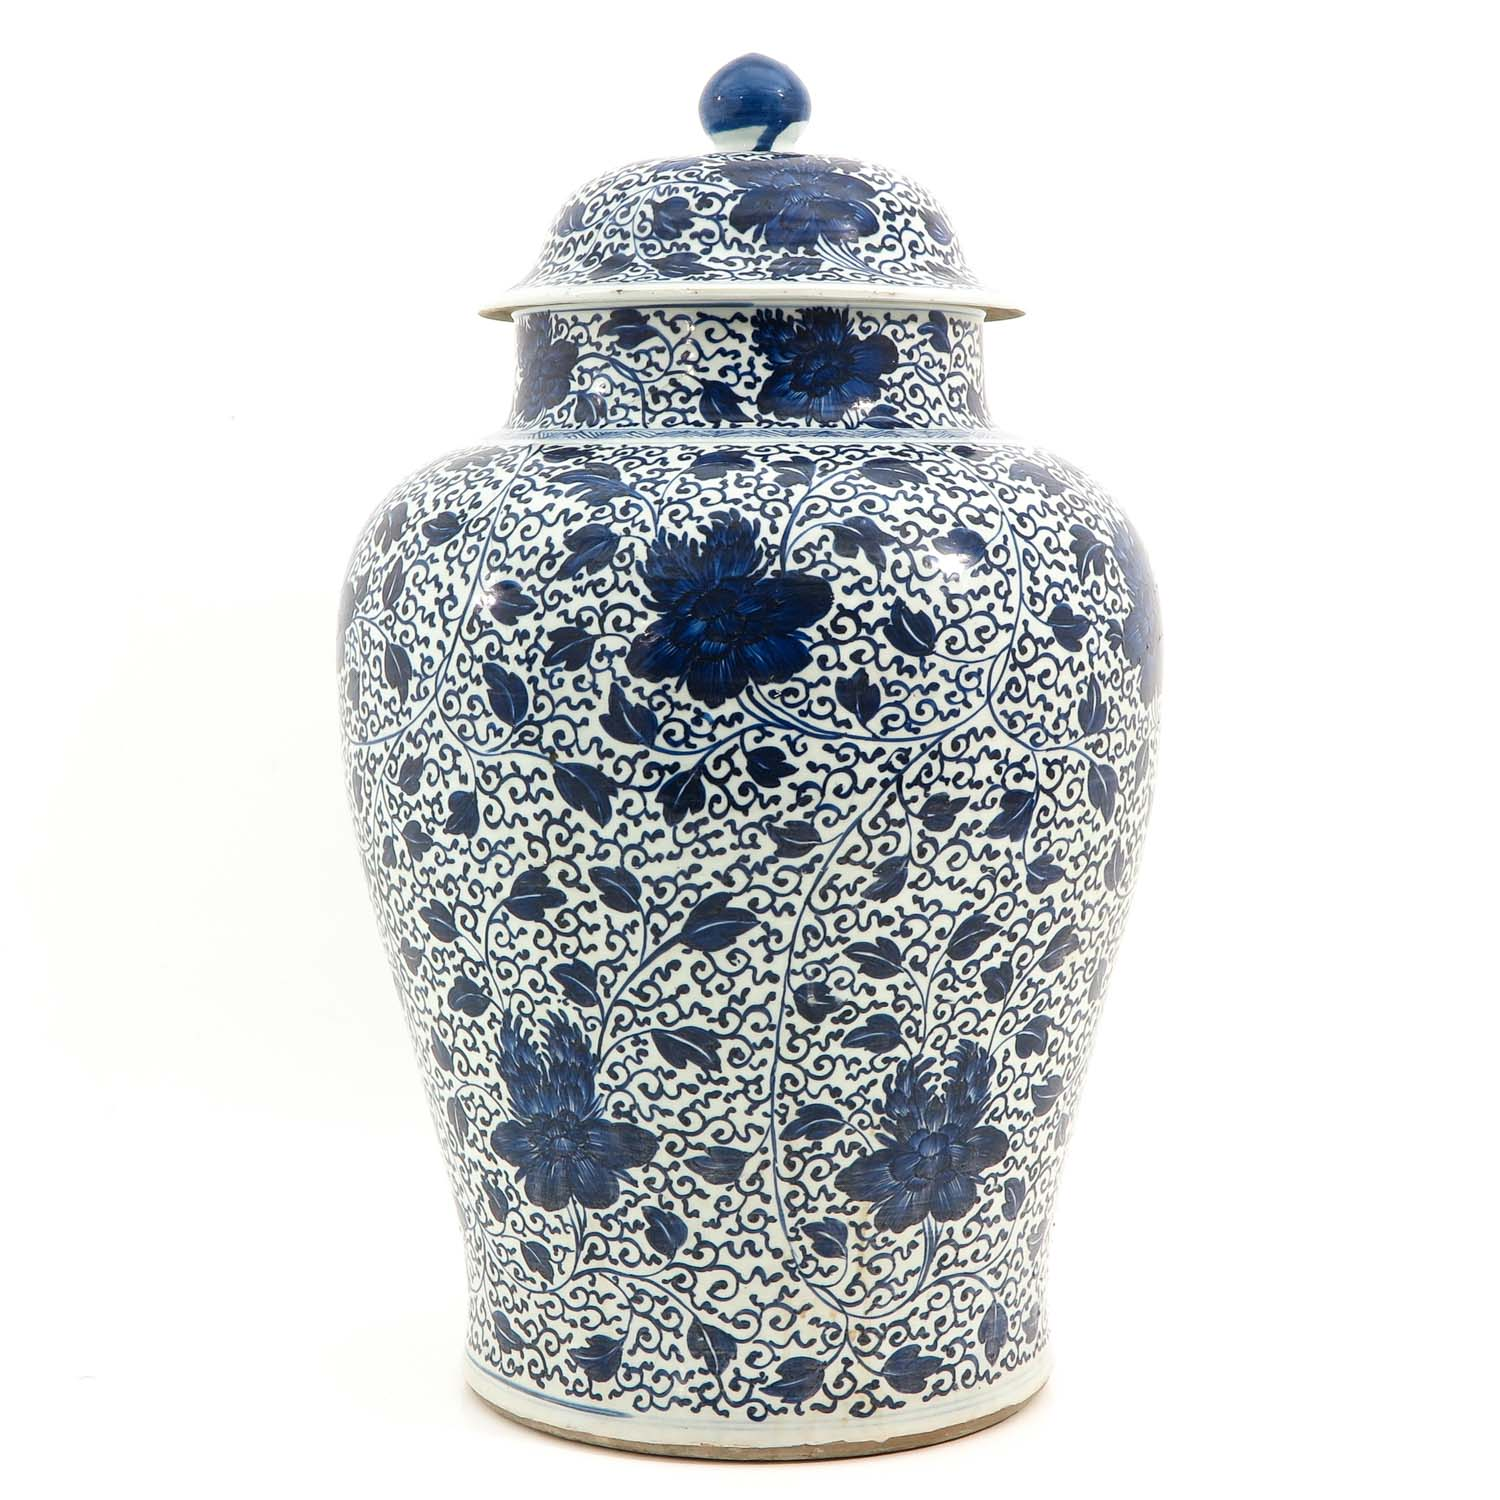 A Large Blue and White Jar - Image 4 of 9